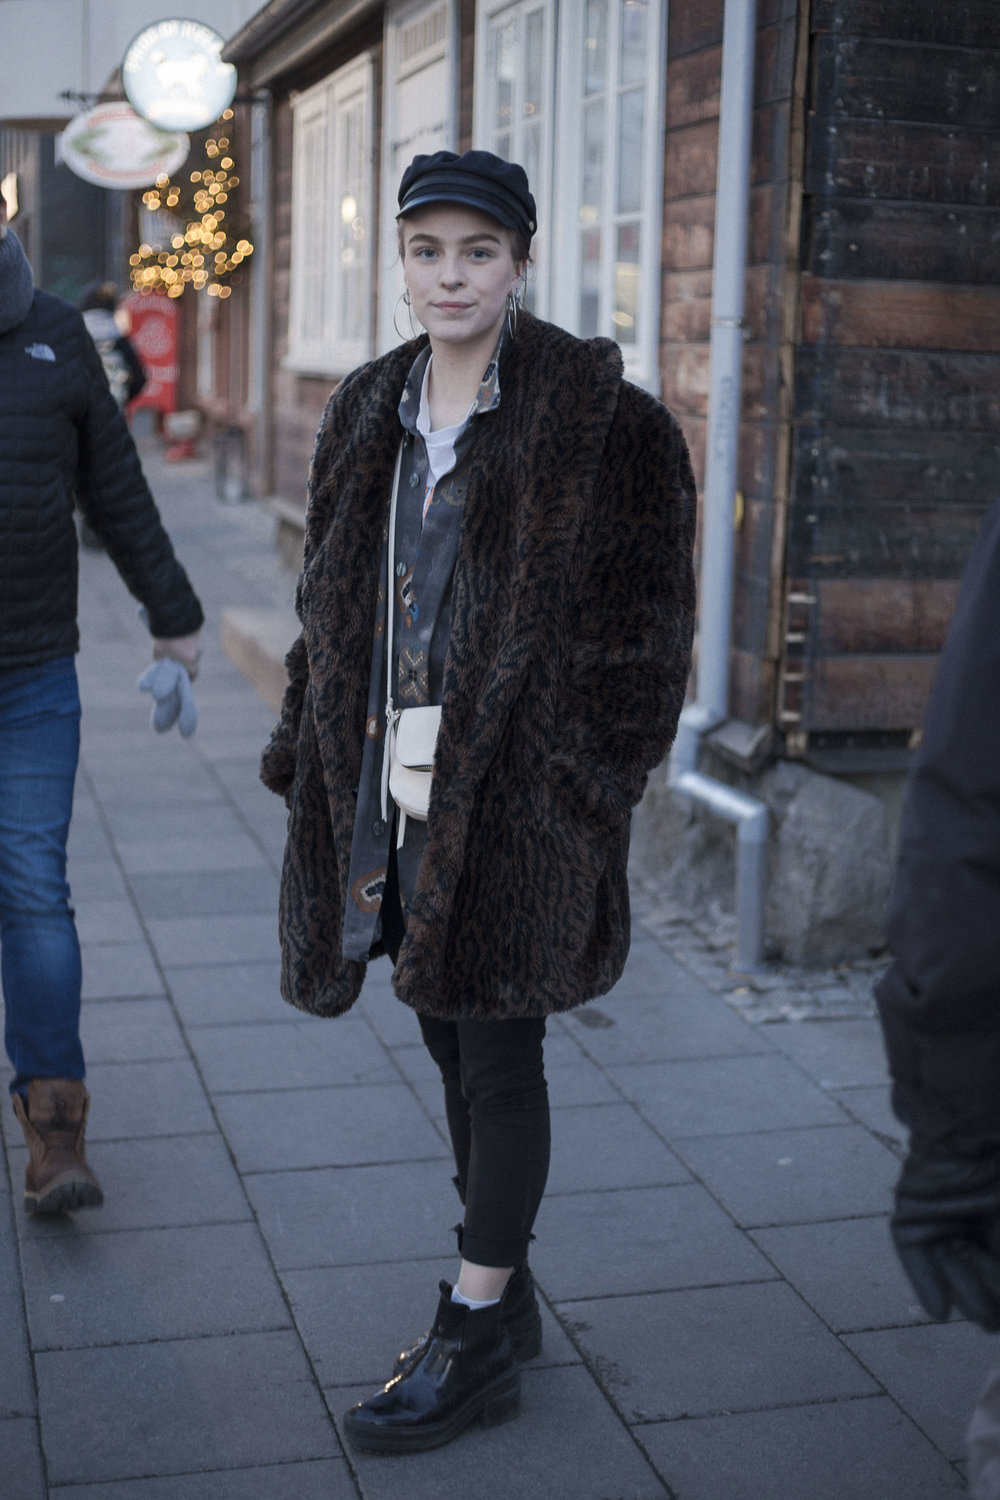 Stylish girl on the streets of Reykjavik in dress from Spuutnik Laugarvegur